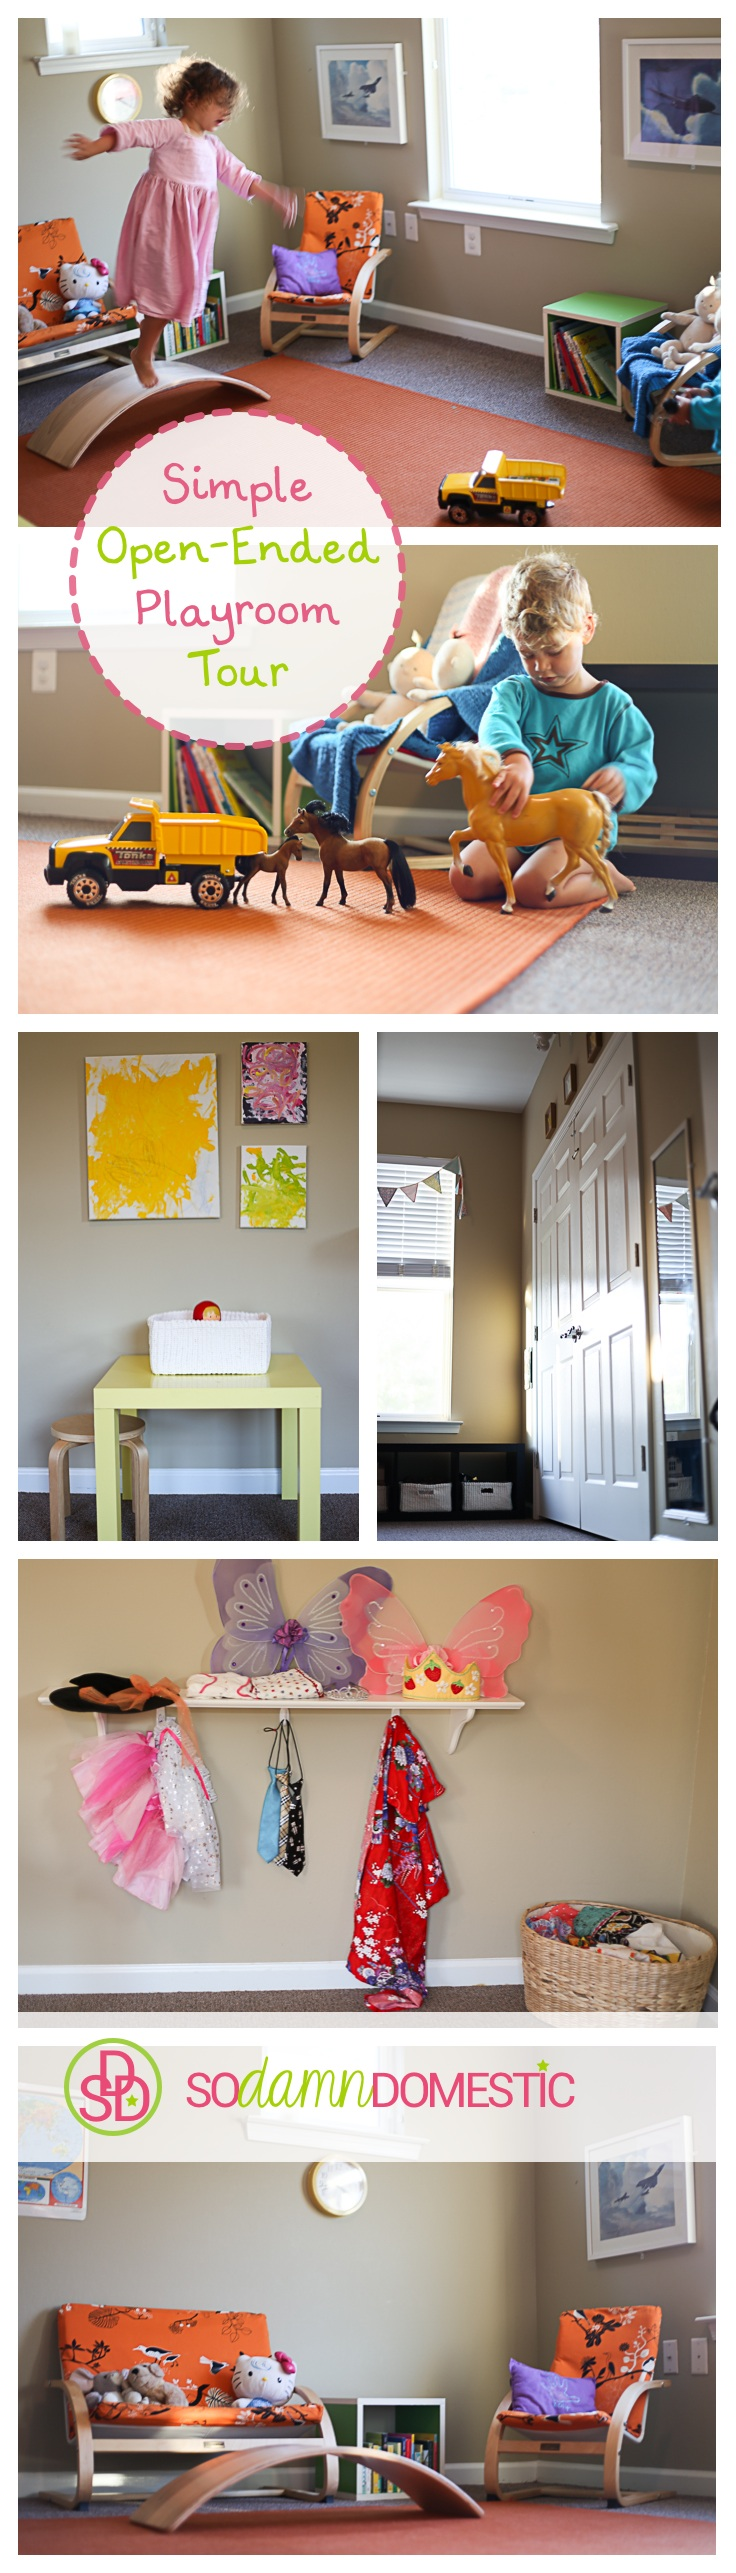 Simple, open-ended playroom tour. Lots of tips for keeping things simple and encouraging creativity.